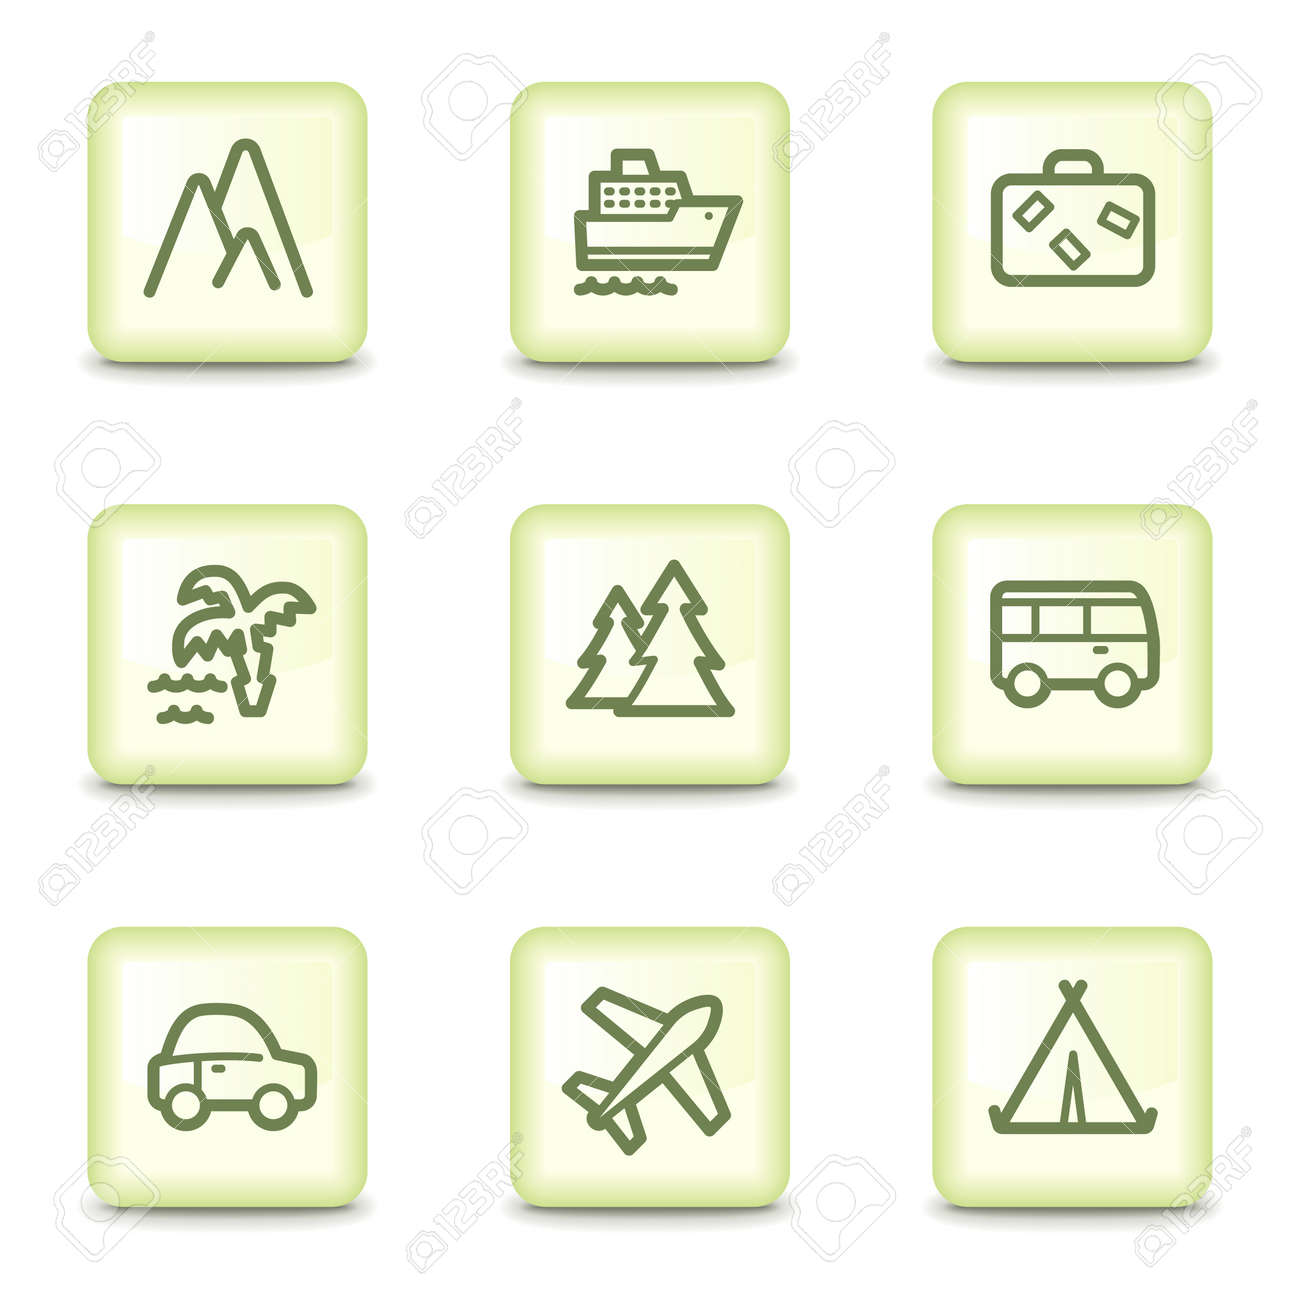 Travel web icons set 1, salad green buttons Stock Vector - 11379801